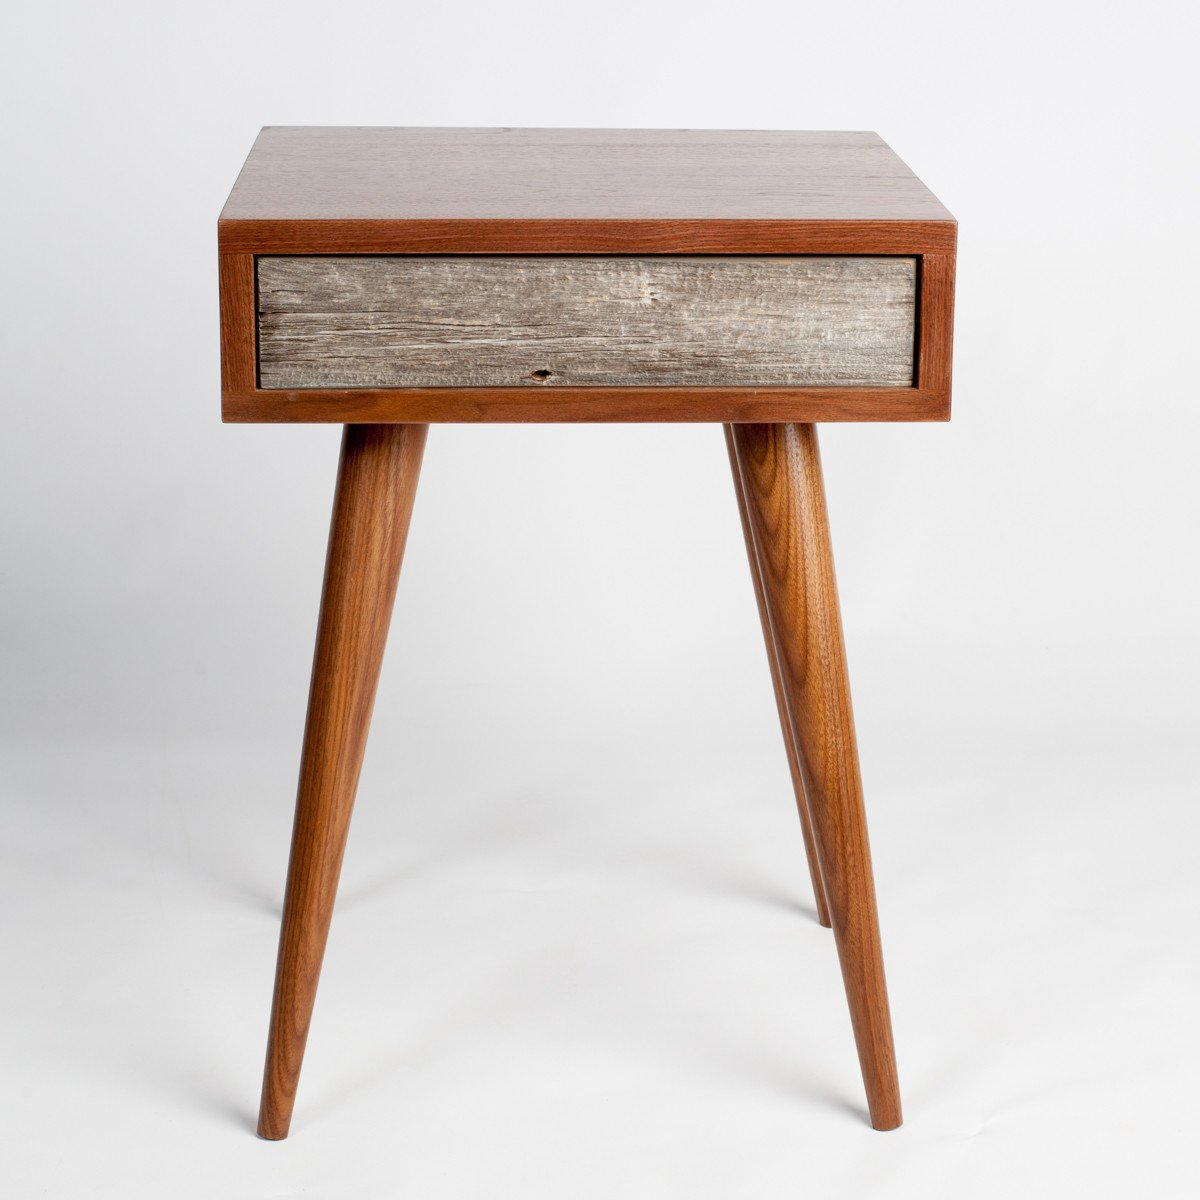 rustic midcentury end table  side table  nightstand  flint  - rustic midcentury end table  side table  nightstand